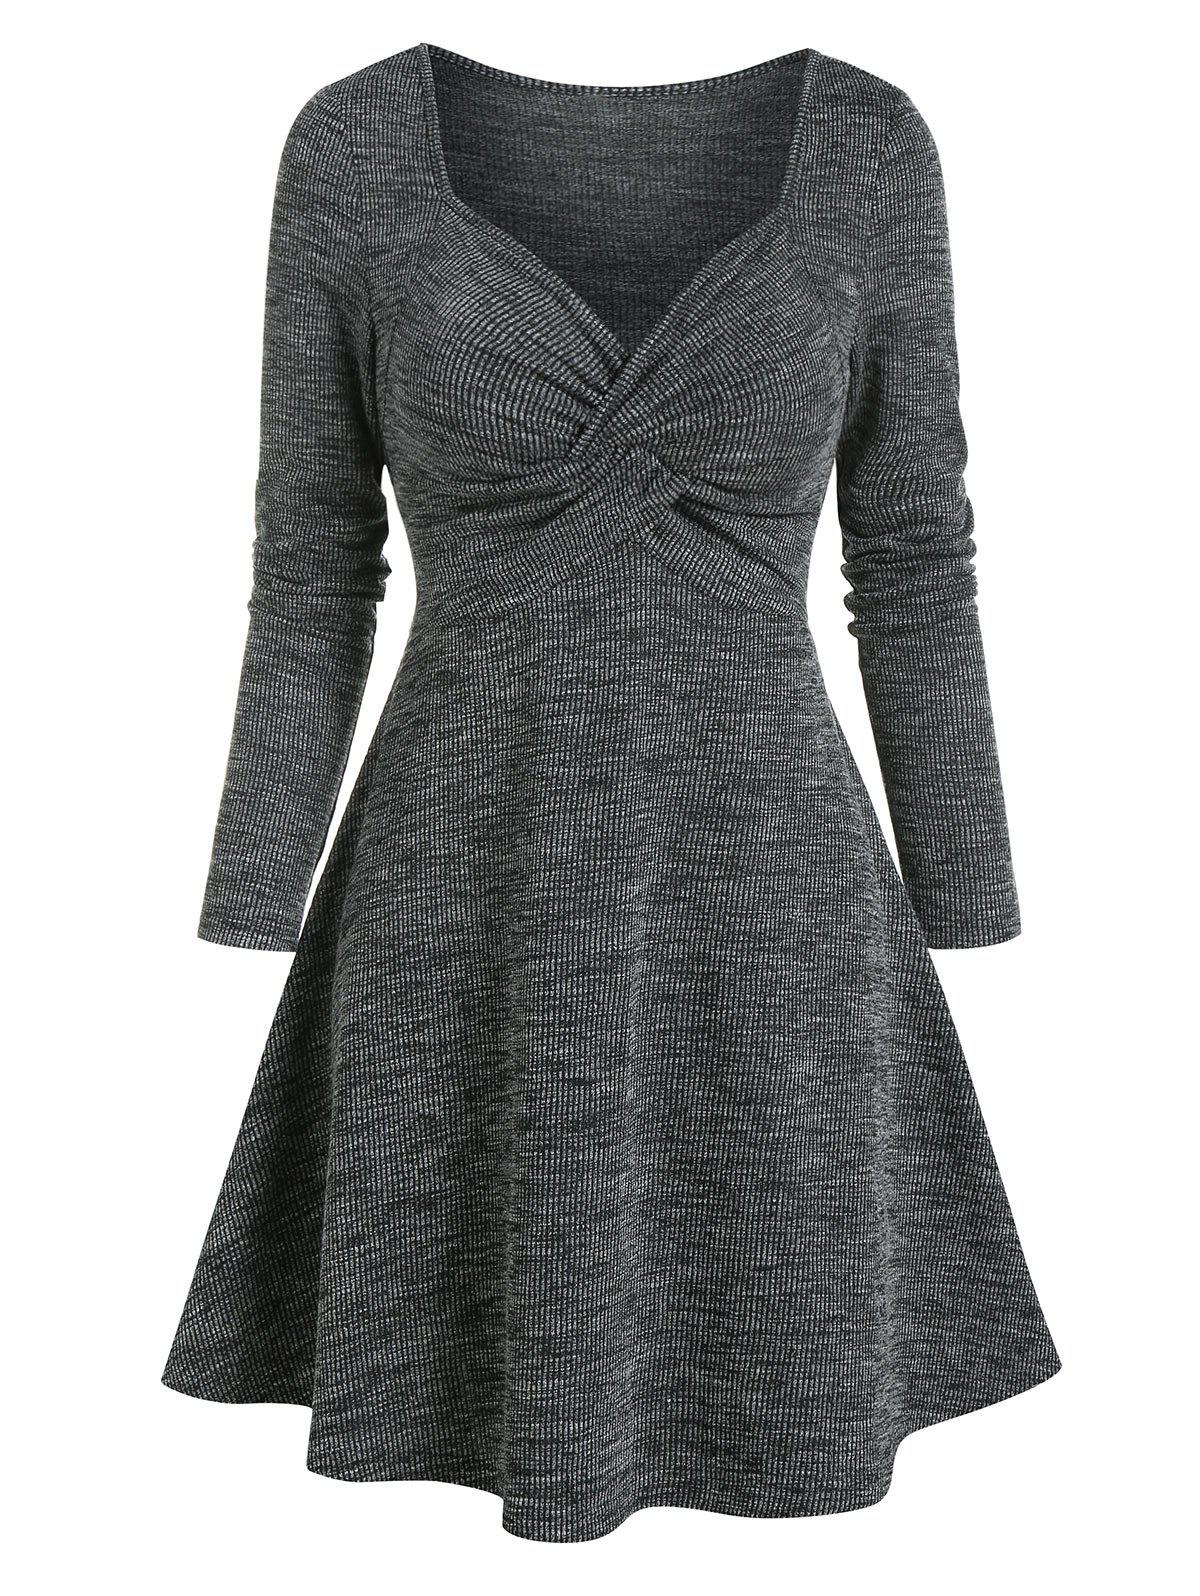 Twist Front Long Sleeve Heathered Ribbed Dress - ASH GRAY 3XL